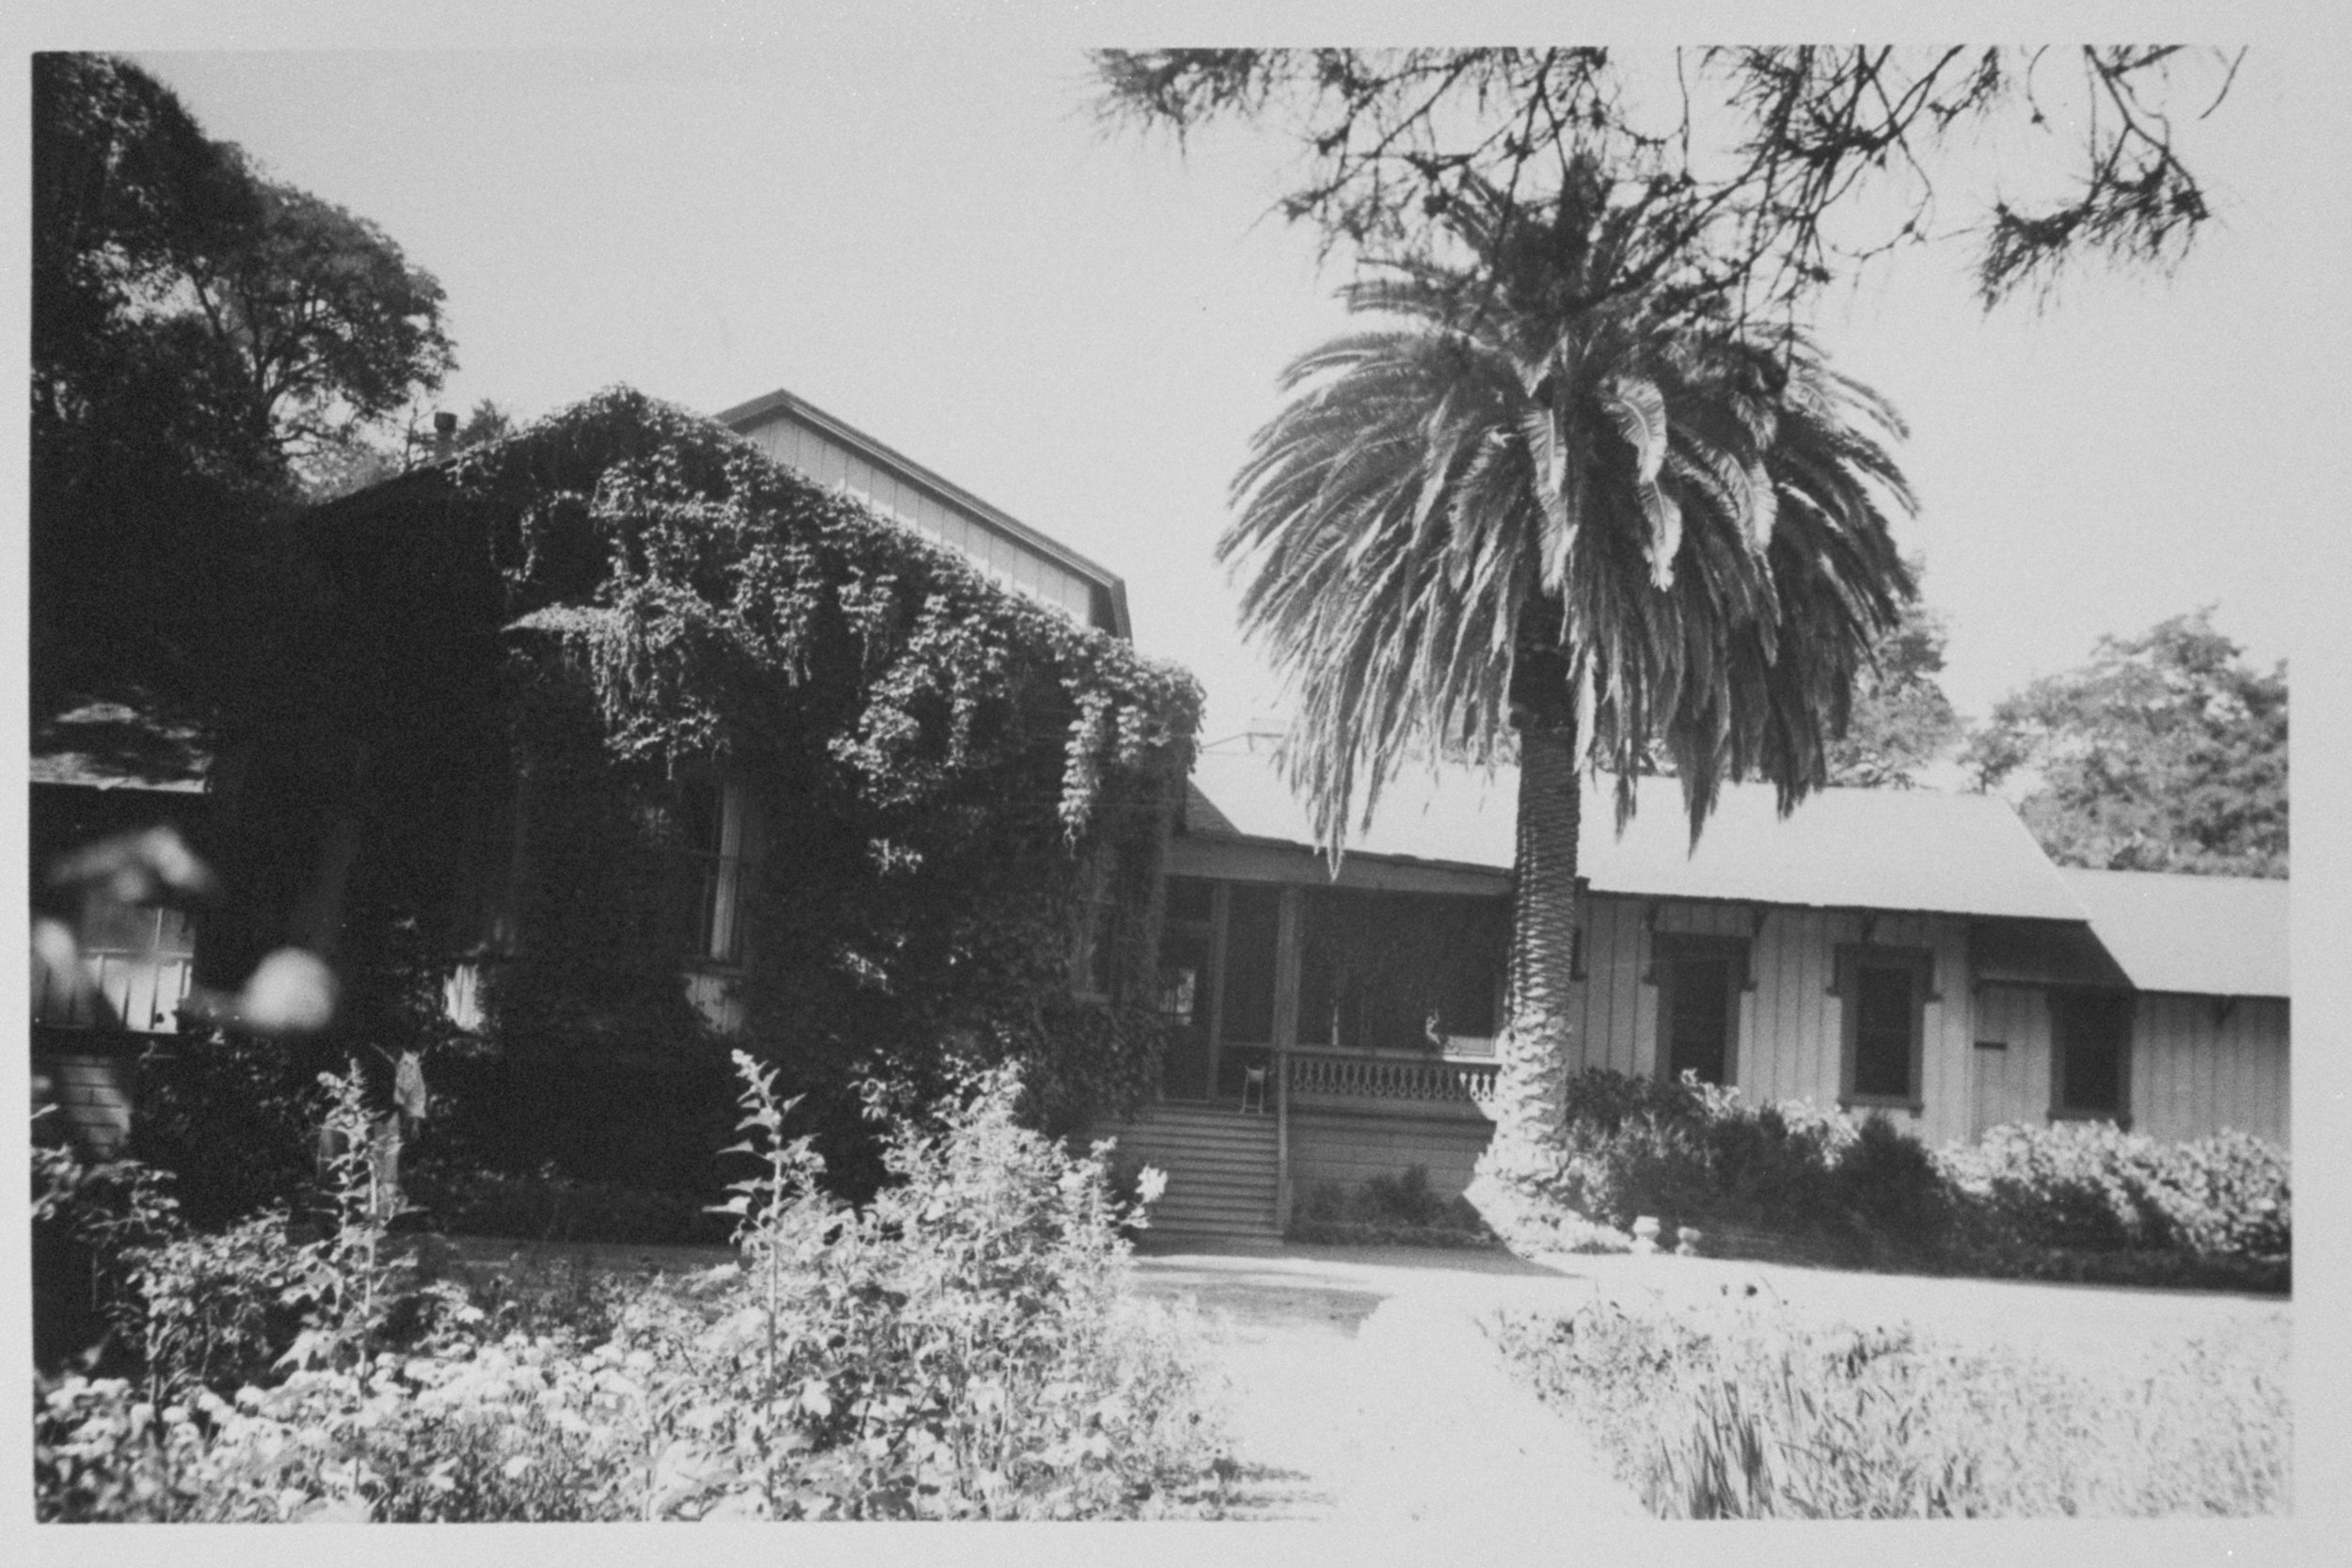 Peter Coutts House